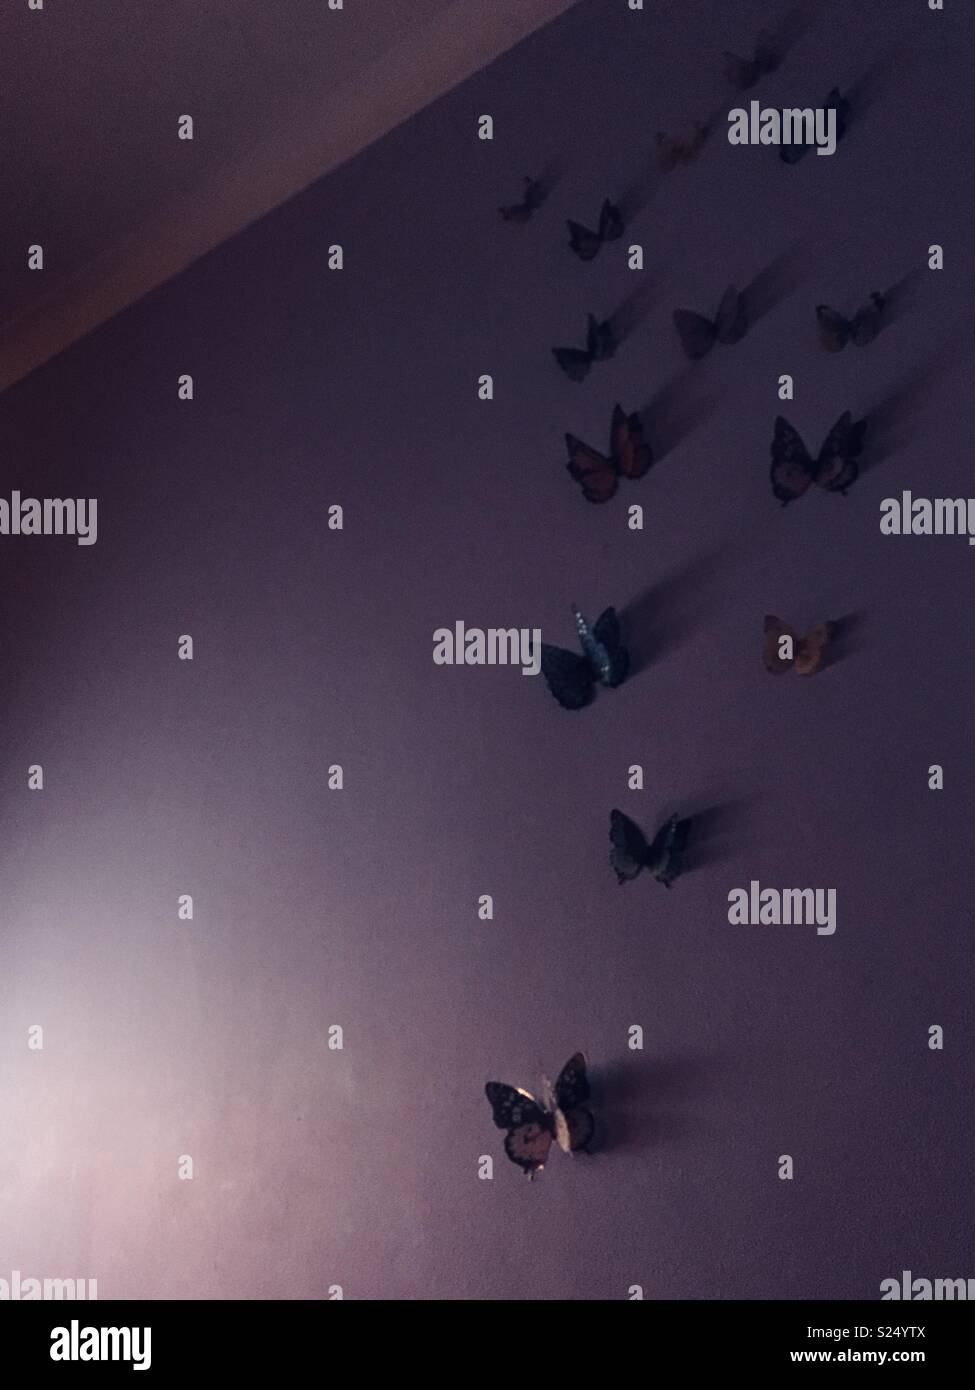 Butterfly decals climbing a wall - Stock Image